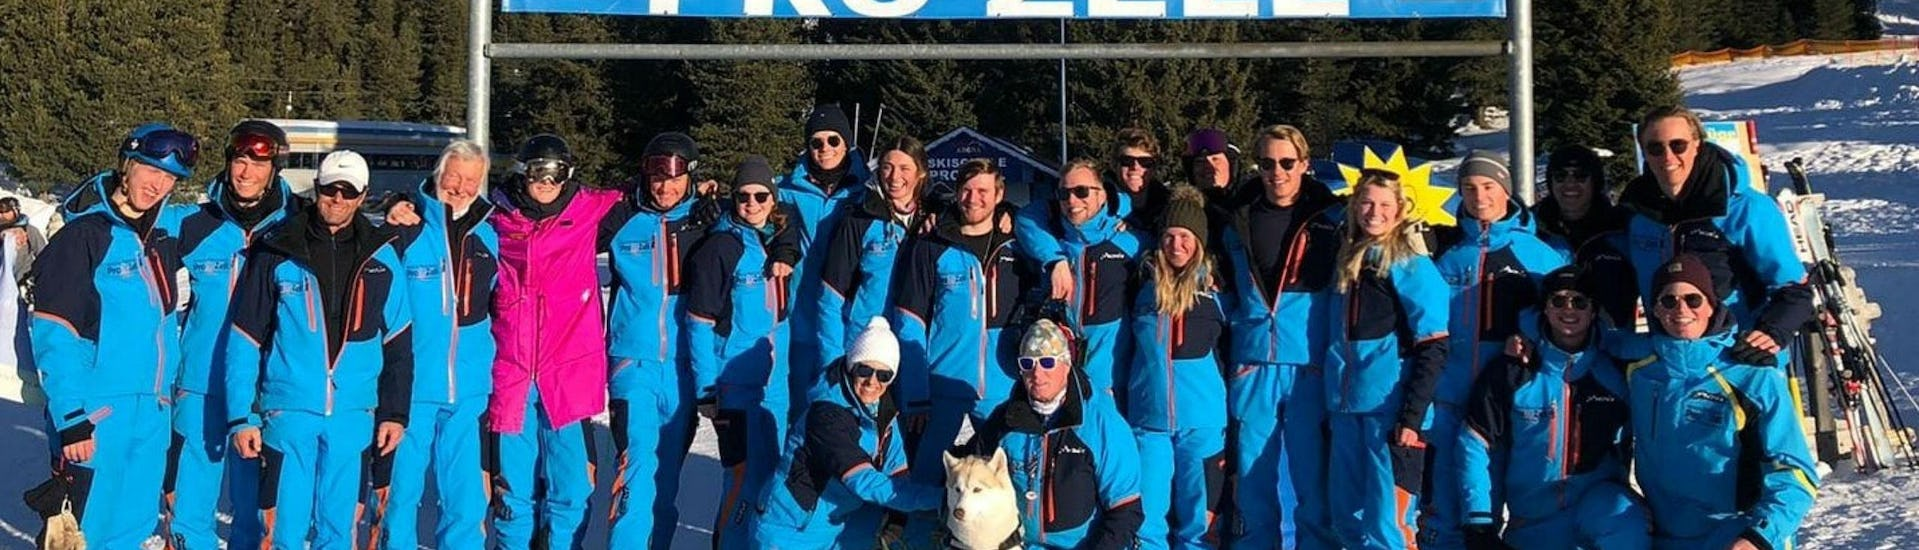 The ski instructors from the ski school Skischule Pro Zell in Zell am Ziller are posing together for a group photo to promote their Private Ski Lessons for Adults - All Levels.